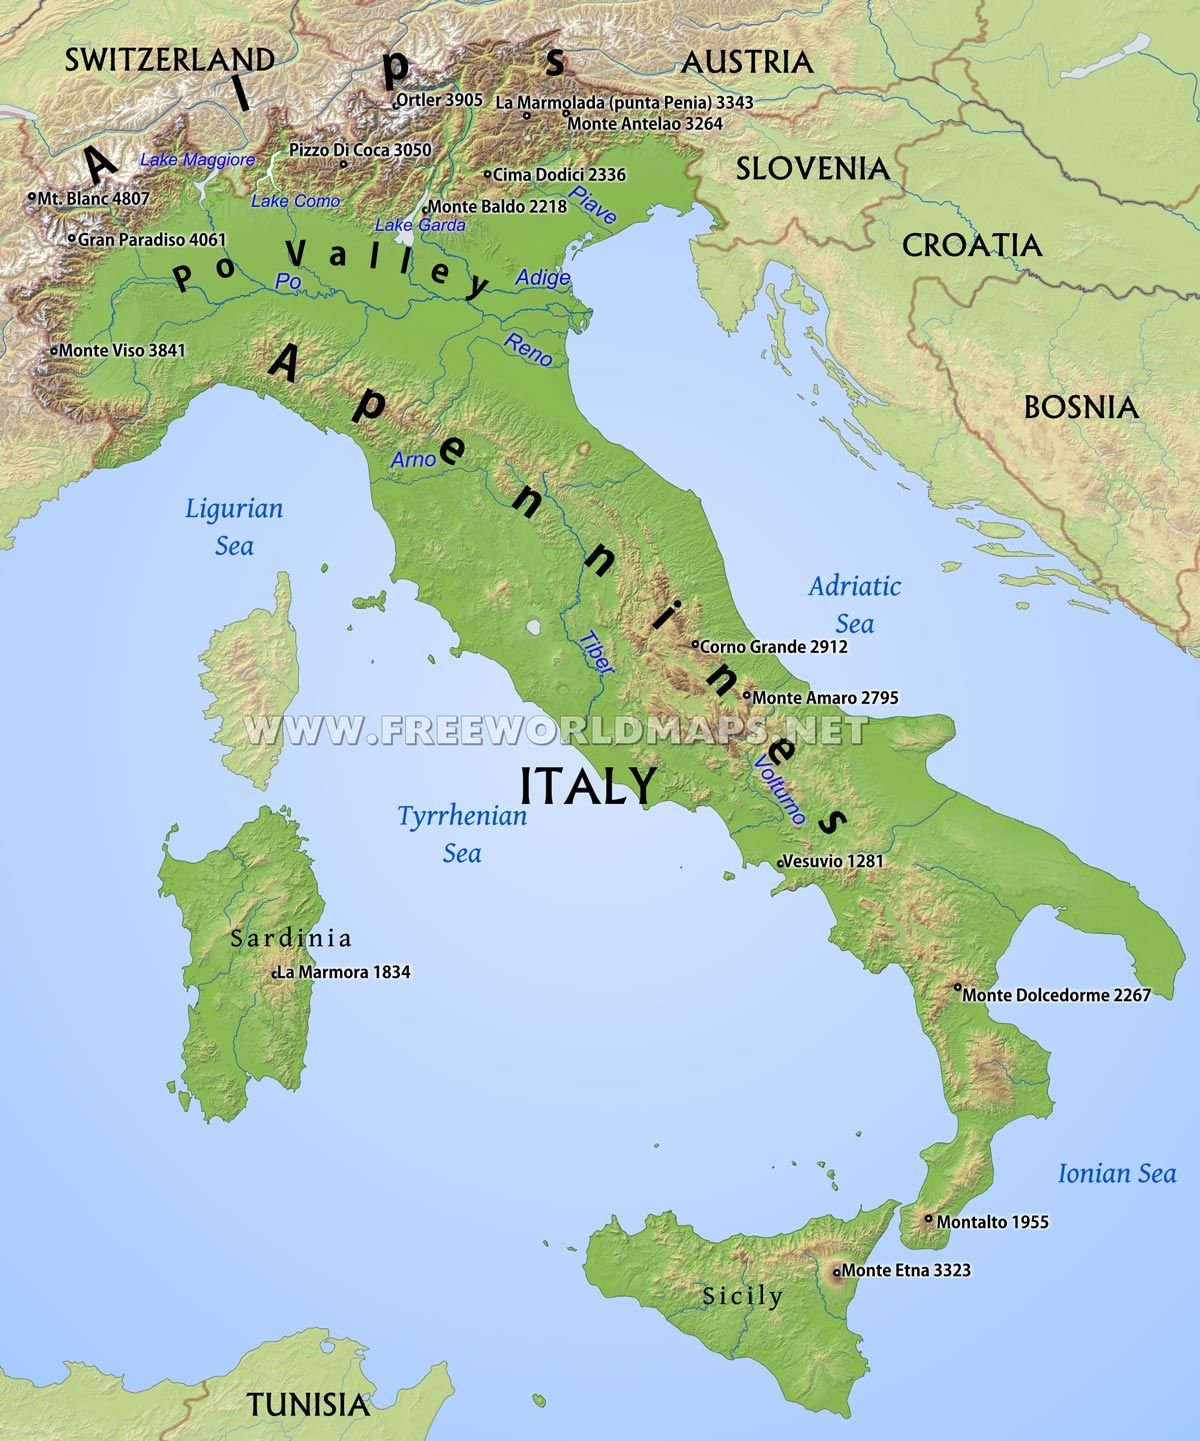 Map Of Italy With Mountains.Italy Physical Map Teaching Italy Map Italy Map